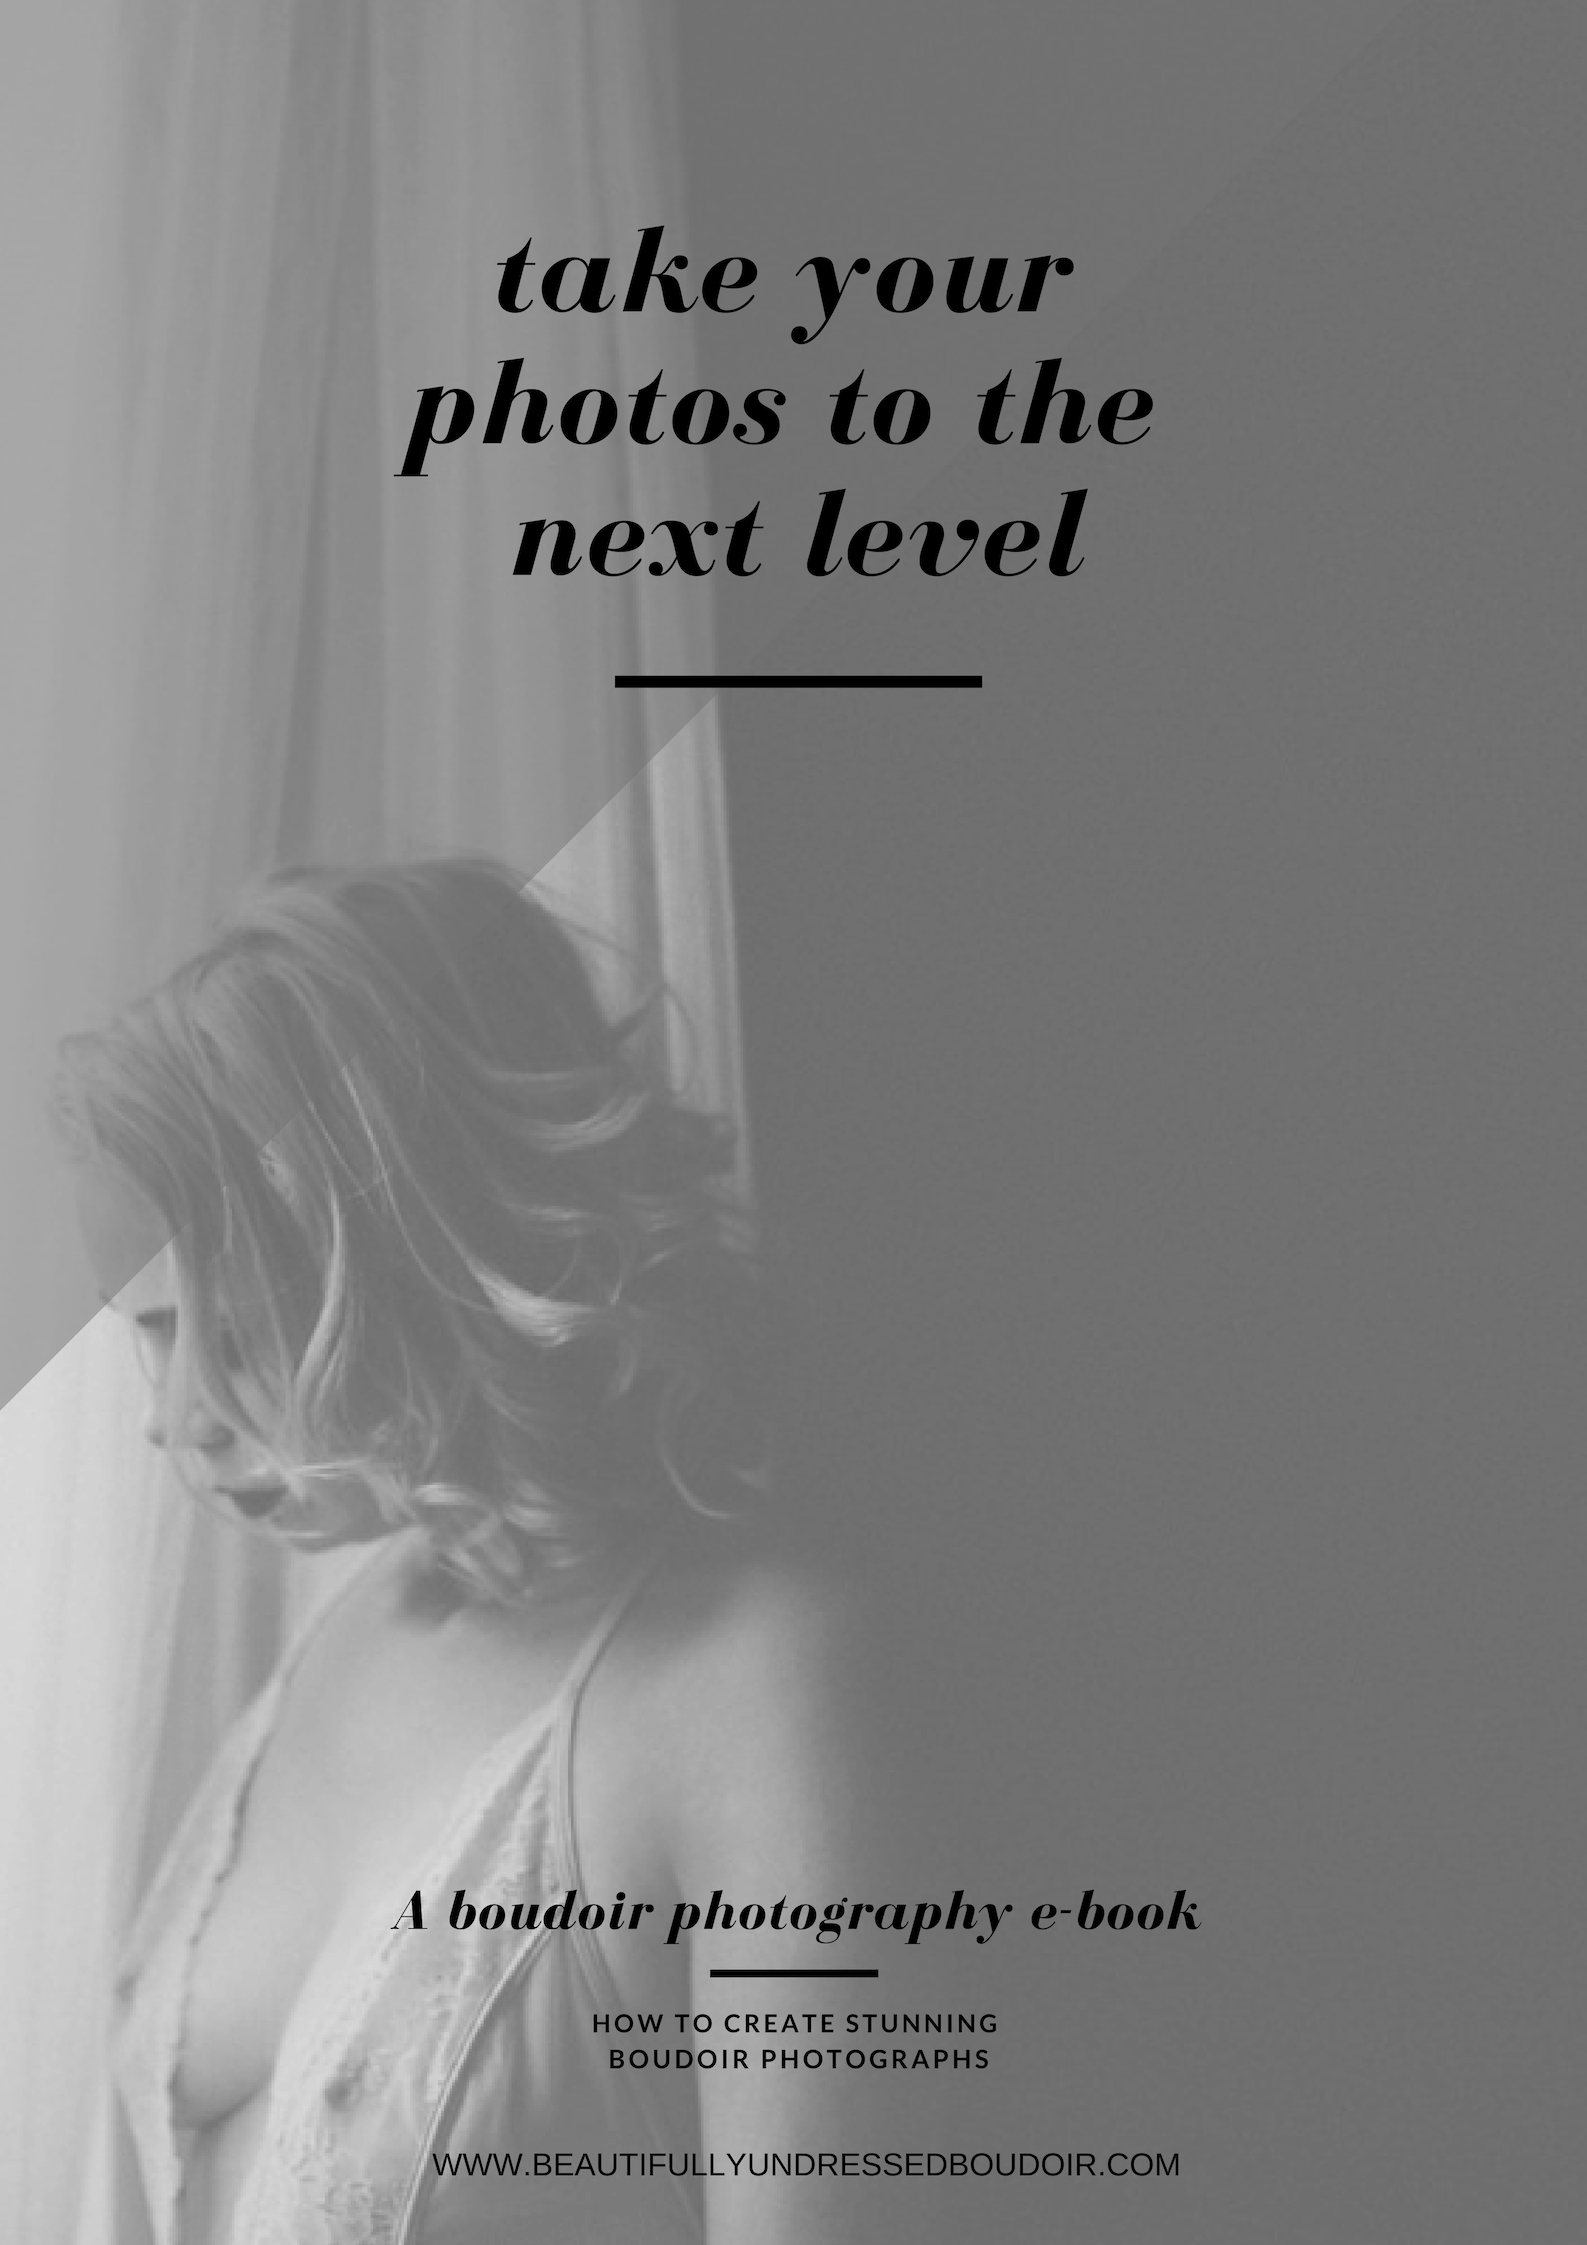 Boudoir_Photography_E-book.jpg